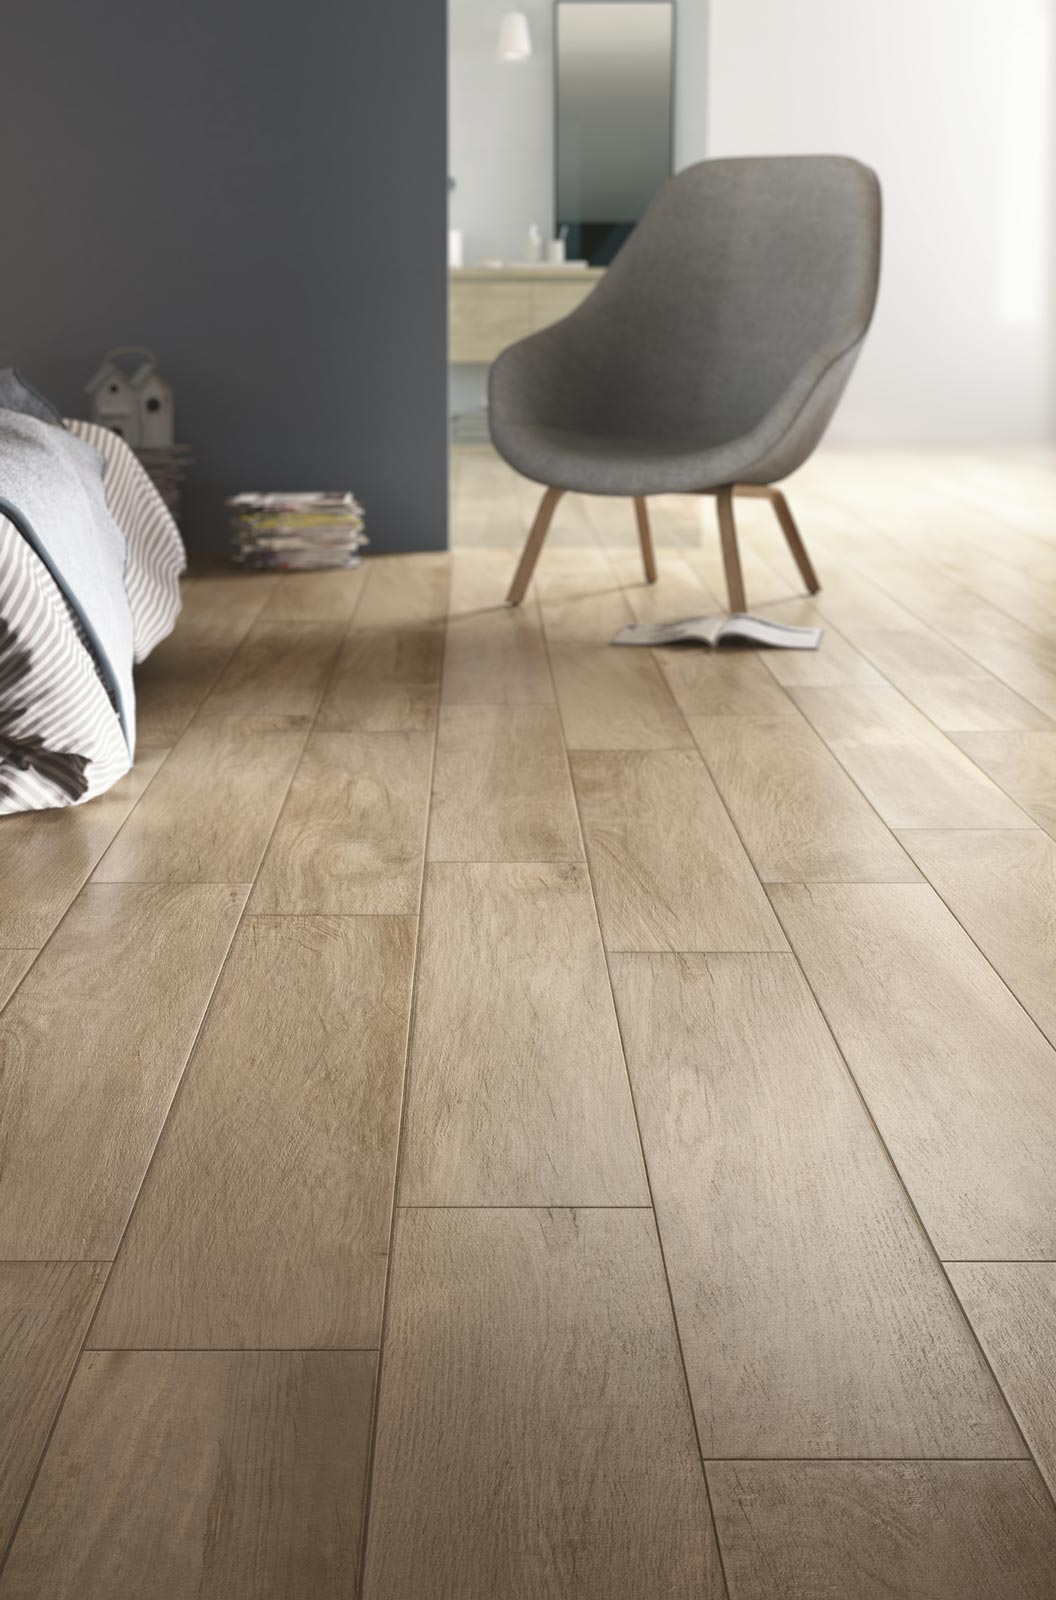 Woodplace wood effect porcelain stoneware ragno - Pose de carrelage imitation parquet ...